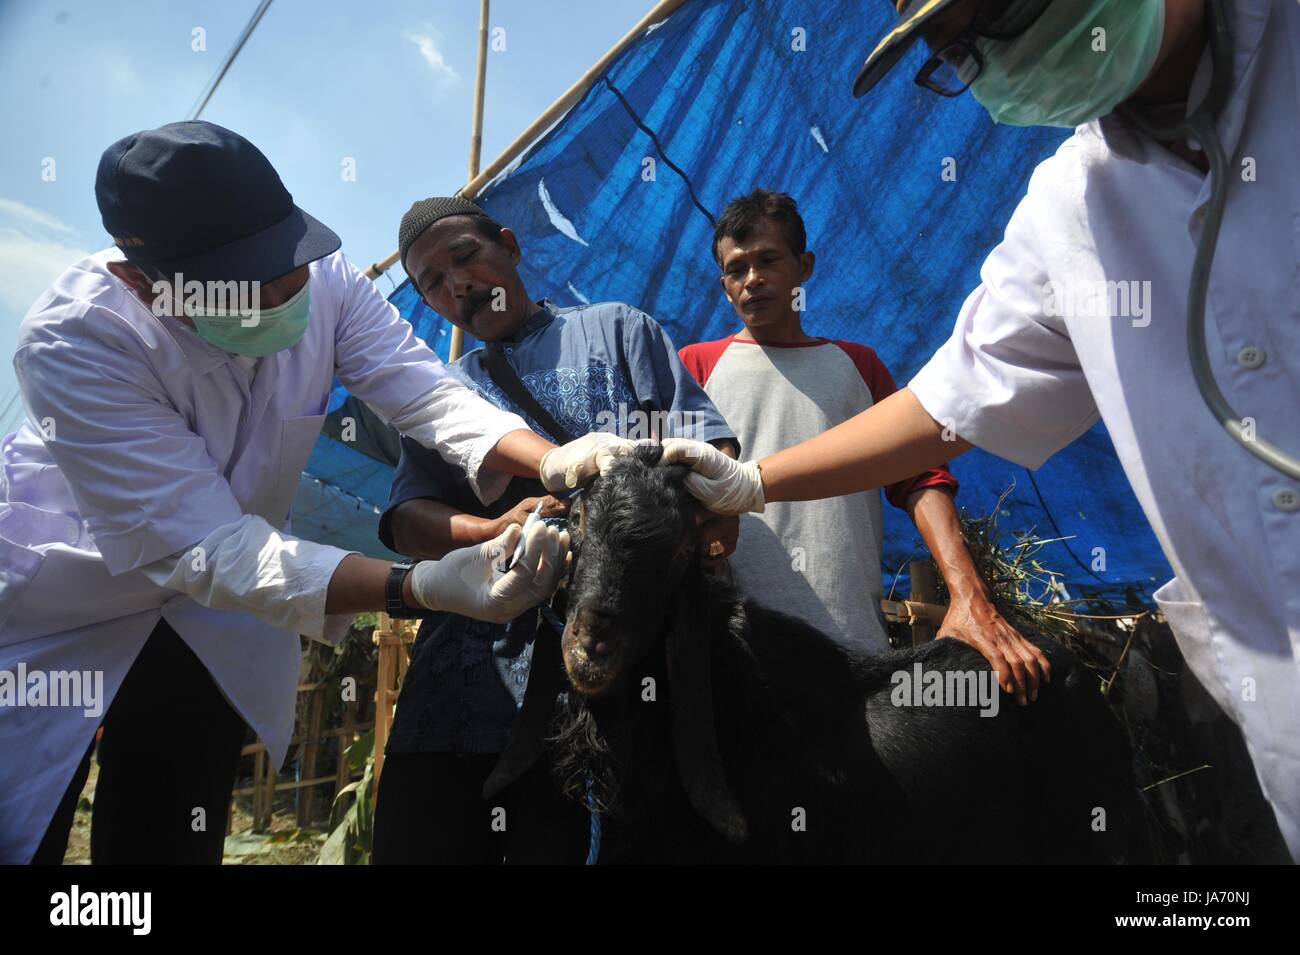 (170824) -- JAKARTA, Aug. 24, 2017 (Xinhua) -- Medical staff check the health condition of a goat at a makeshift Stock Photo